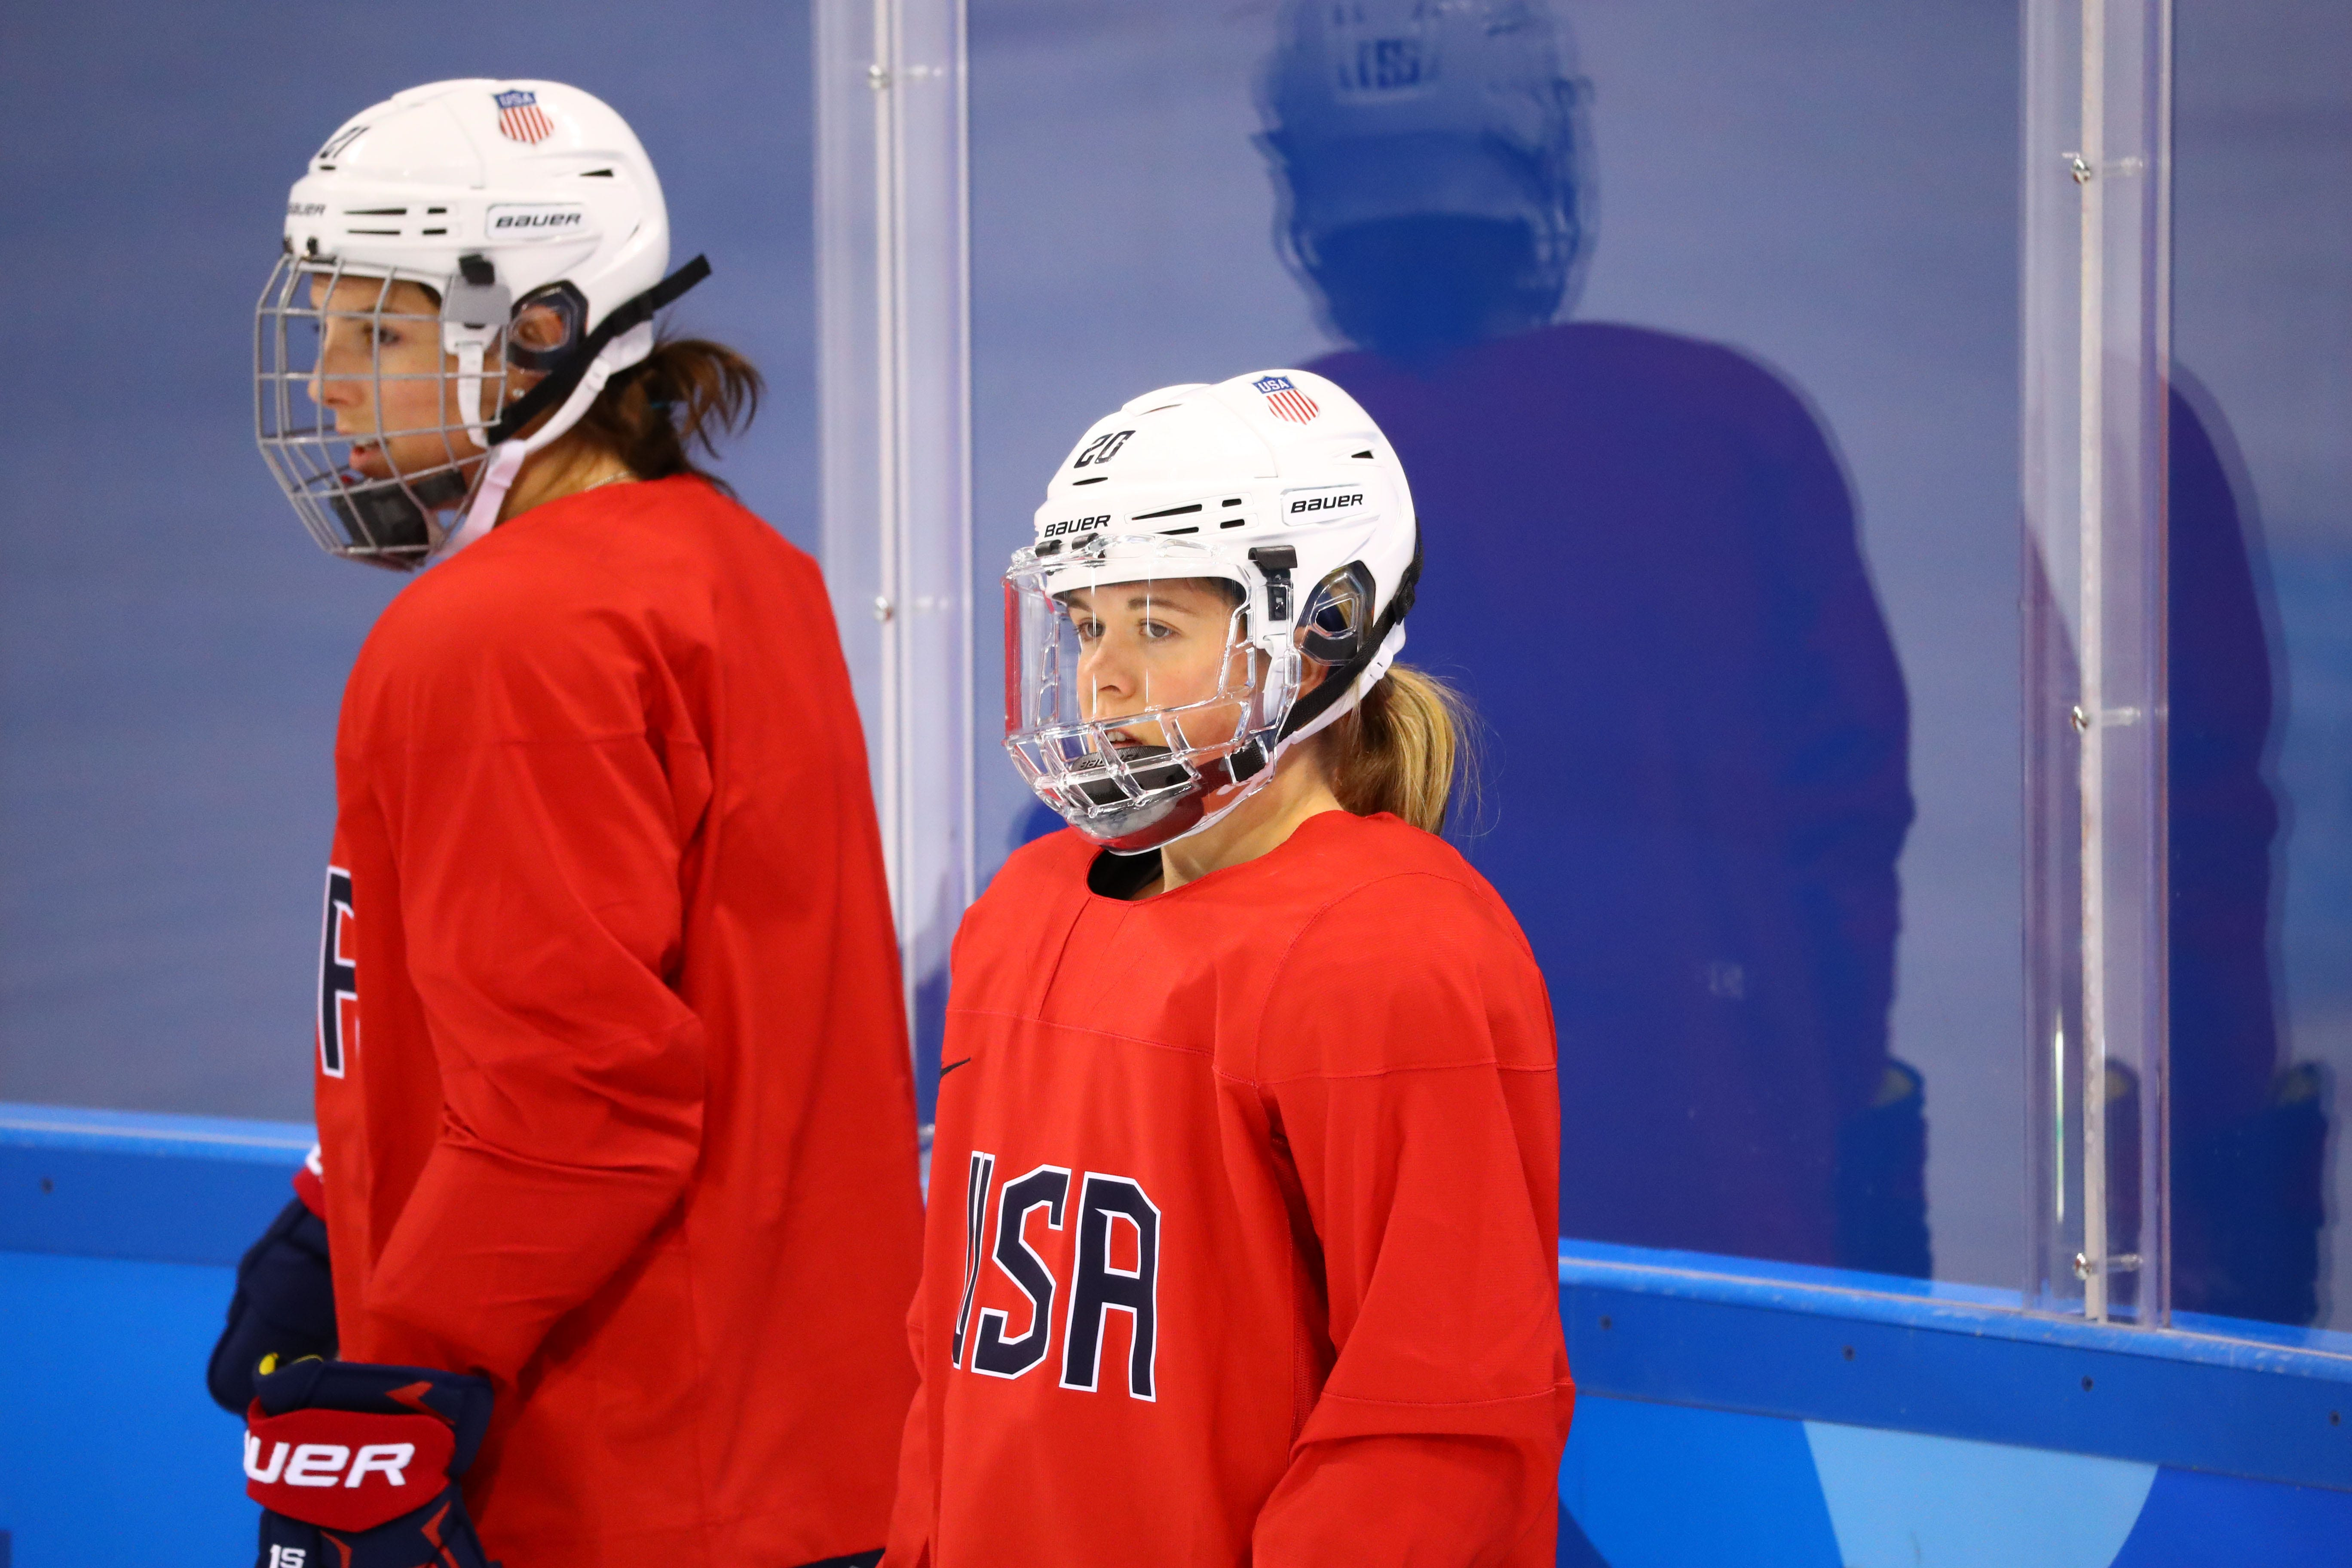 Brandt sisters head to Olympic hockey tournament for different countries